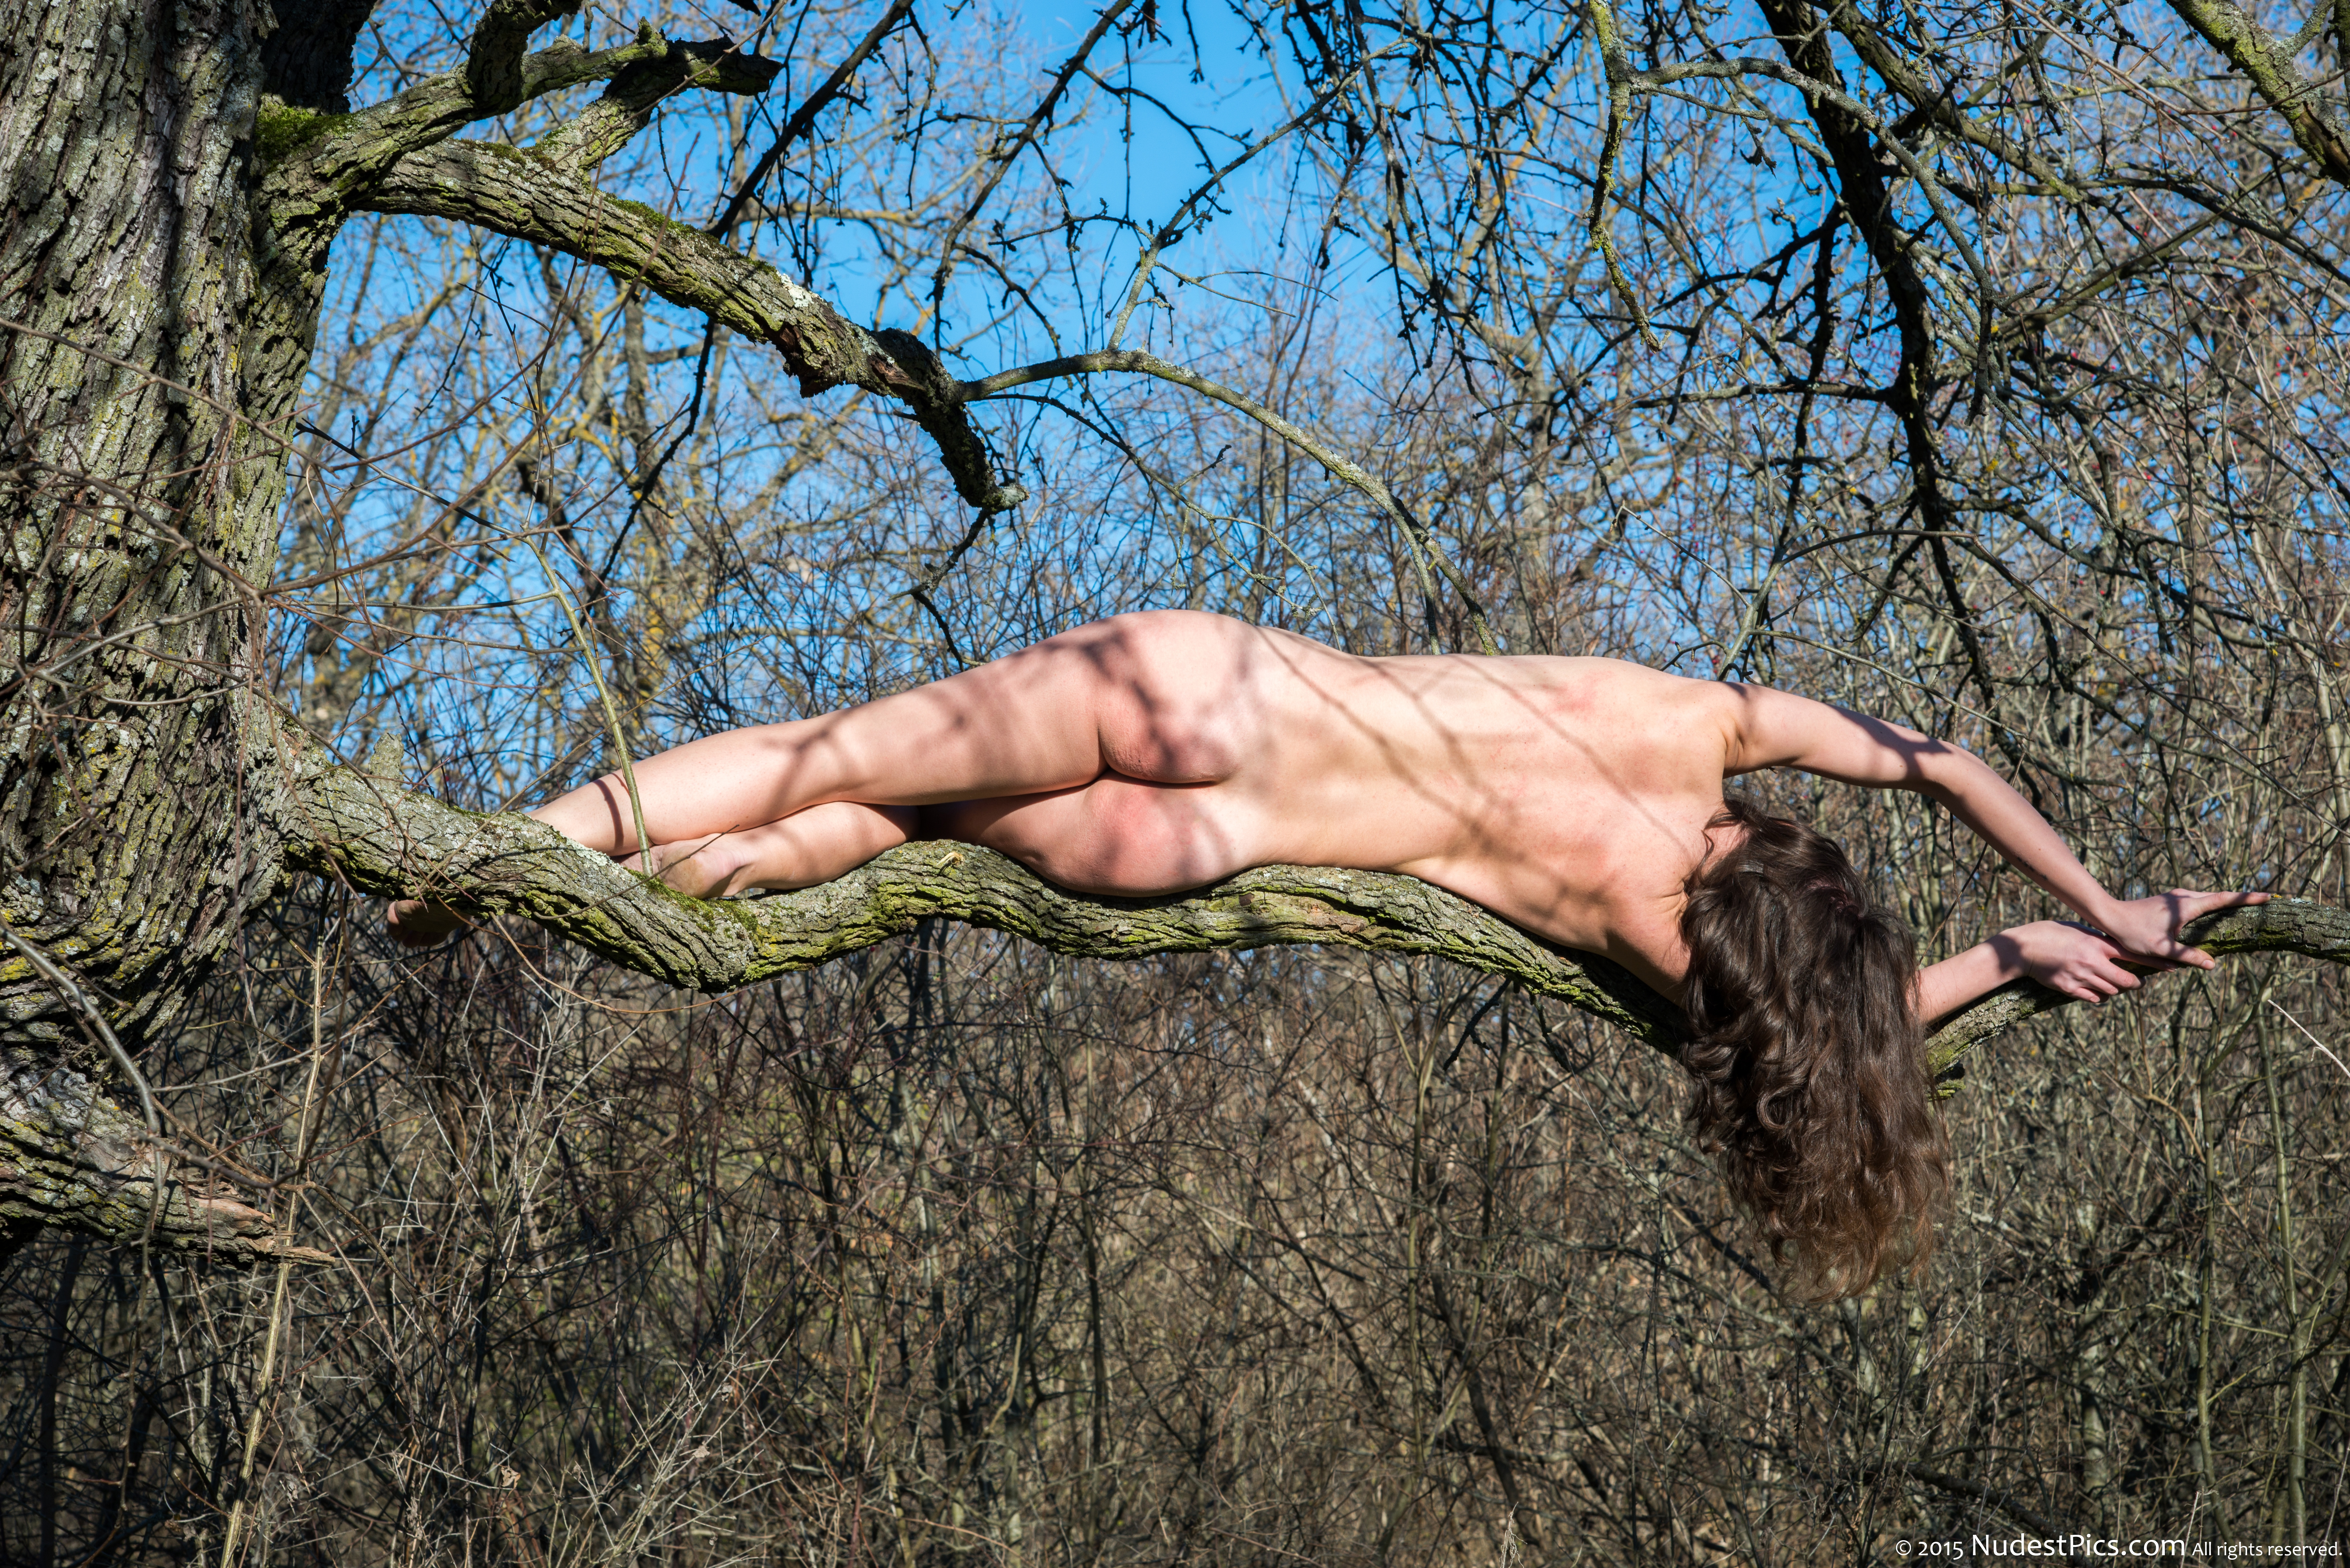 Nudist Girl Sunbathing on a Branch from Behind HD